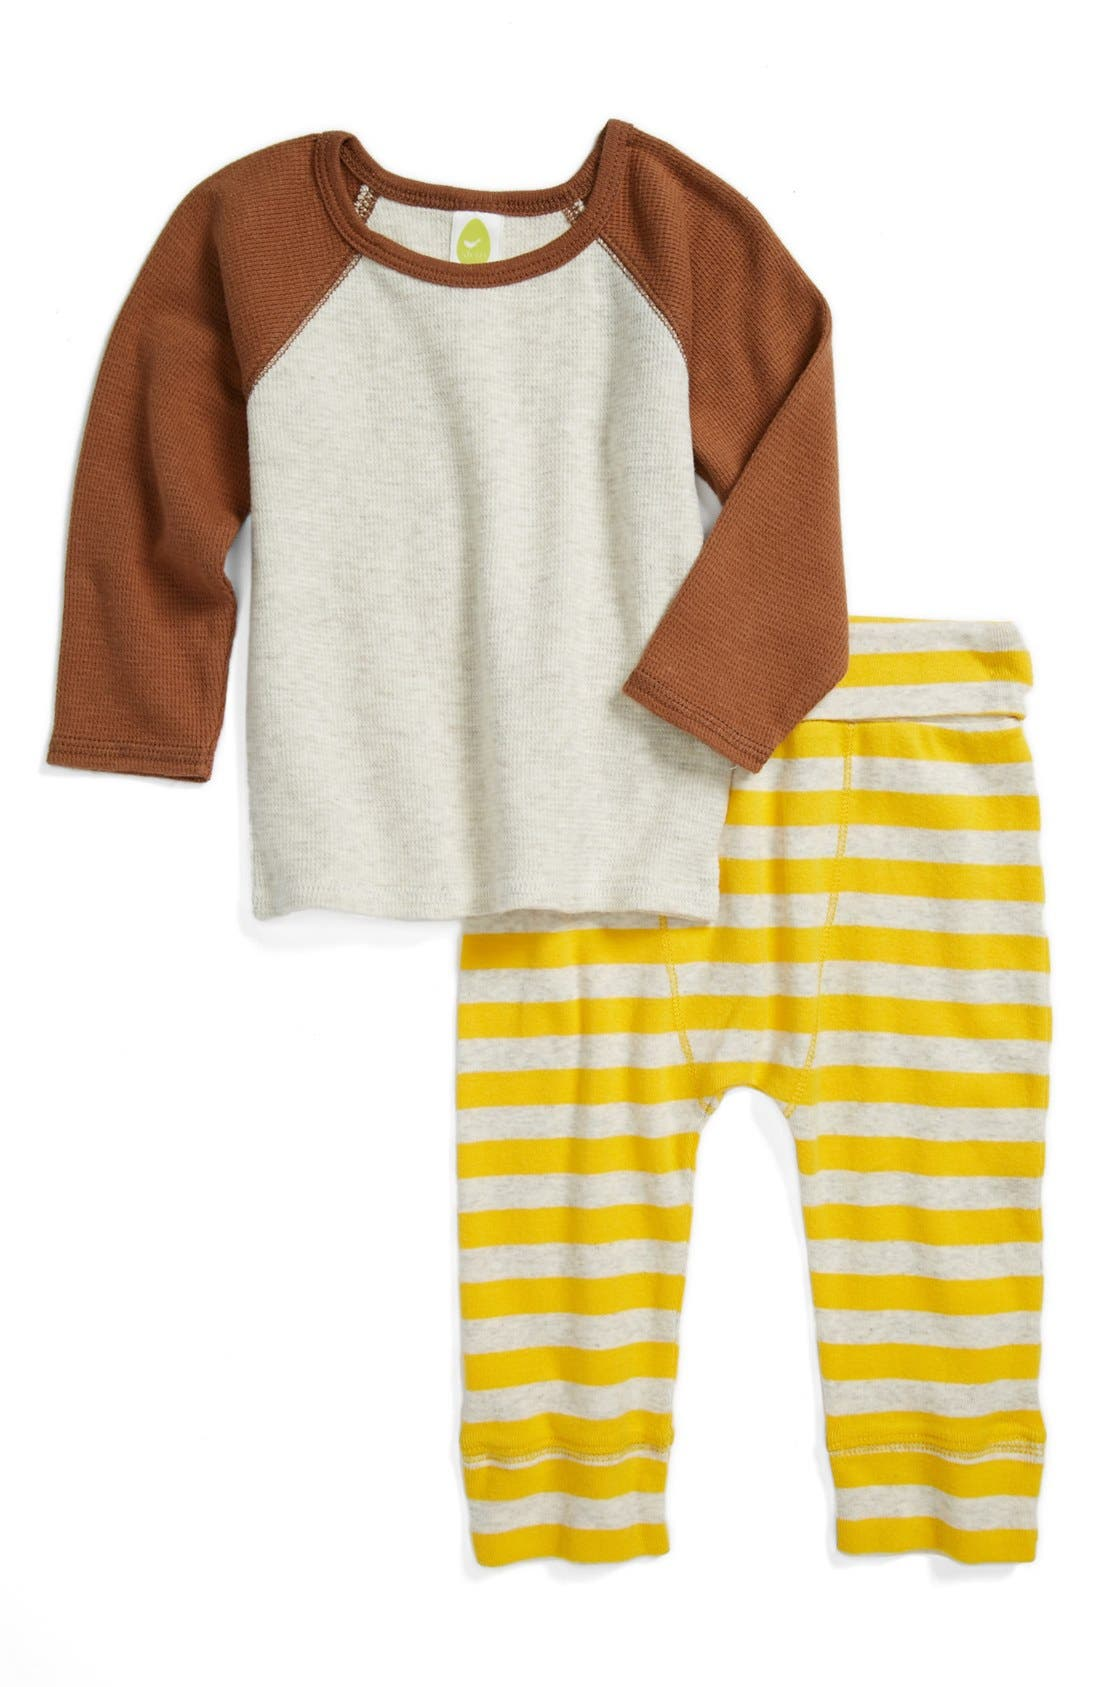 Main Image - Stem Baby Organic Cotton Top & Pants (Baby Boys)